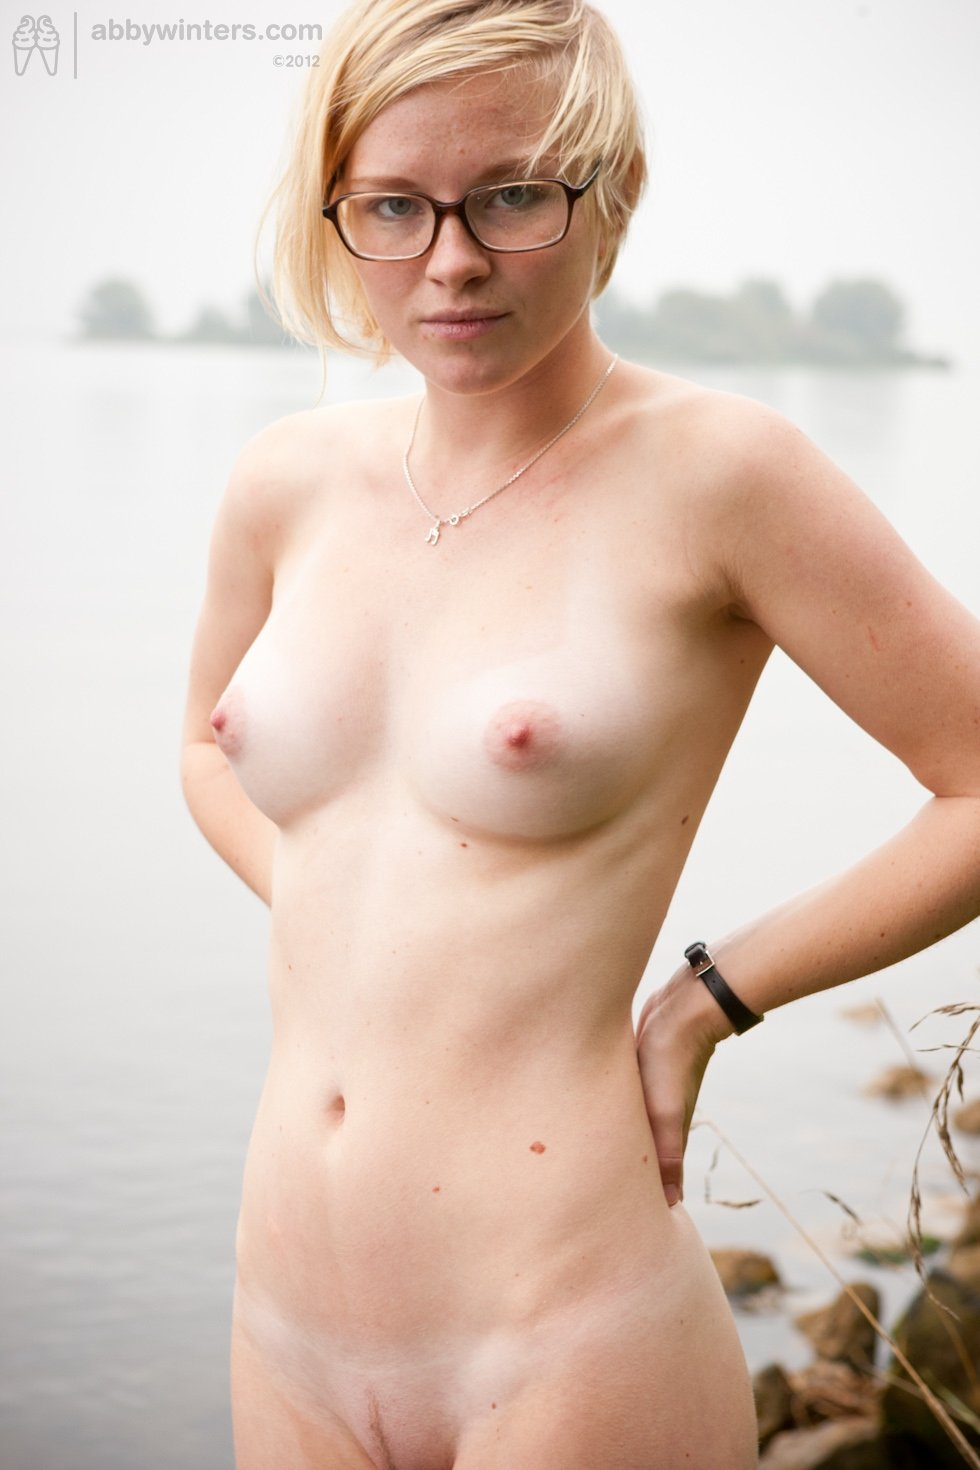 nude pics of girls boobs